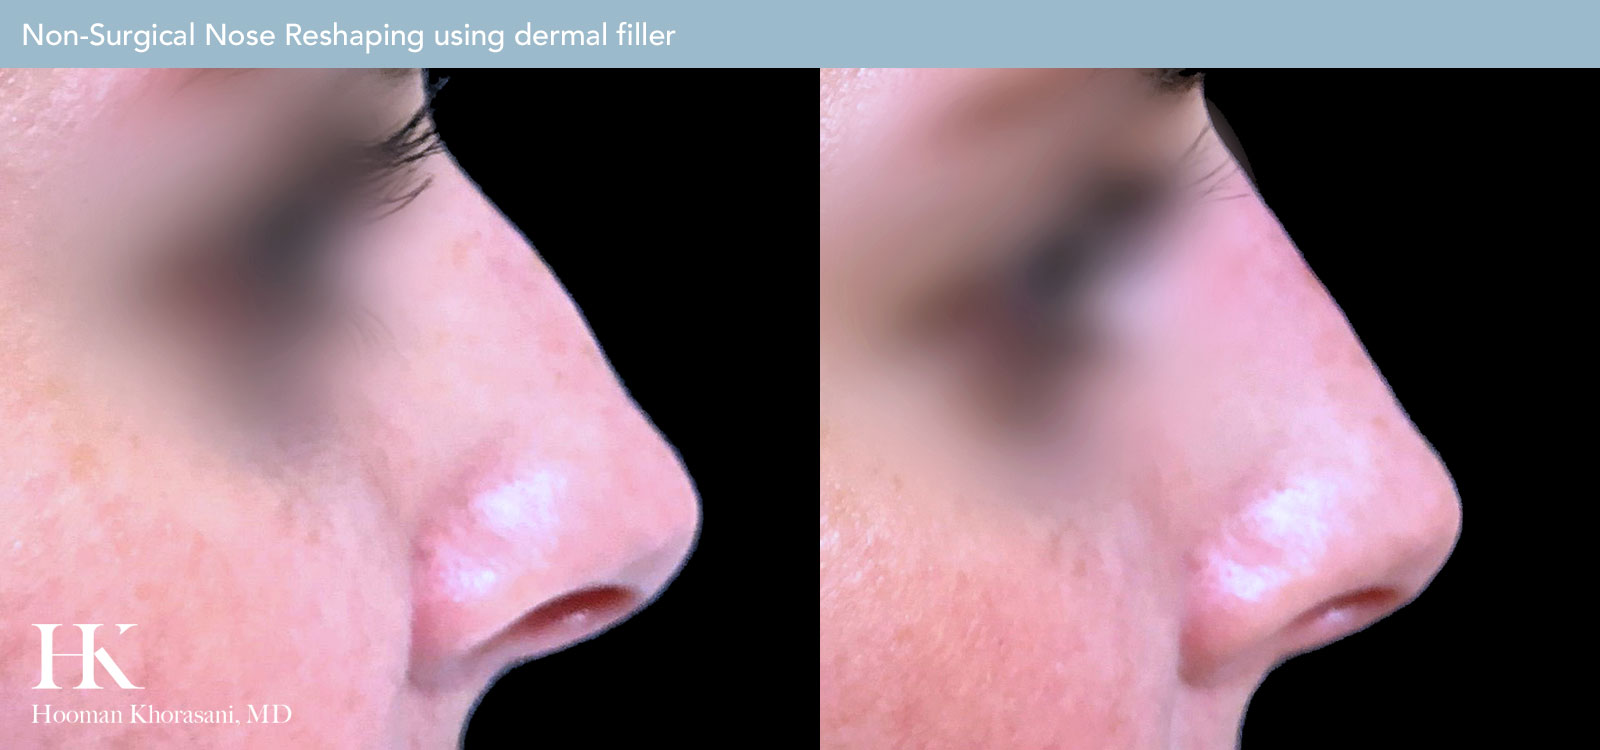 Non-Surgical Nose Reshaping Before and After Case